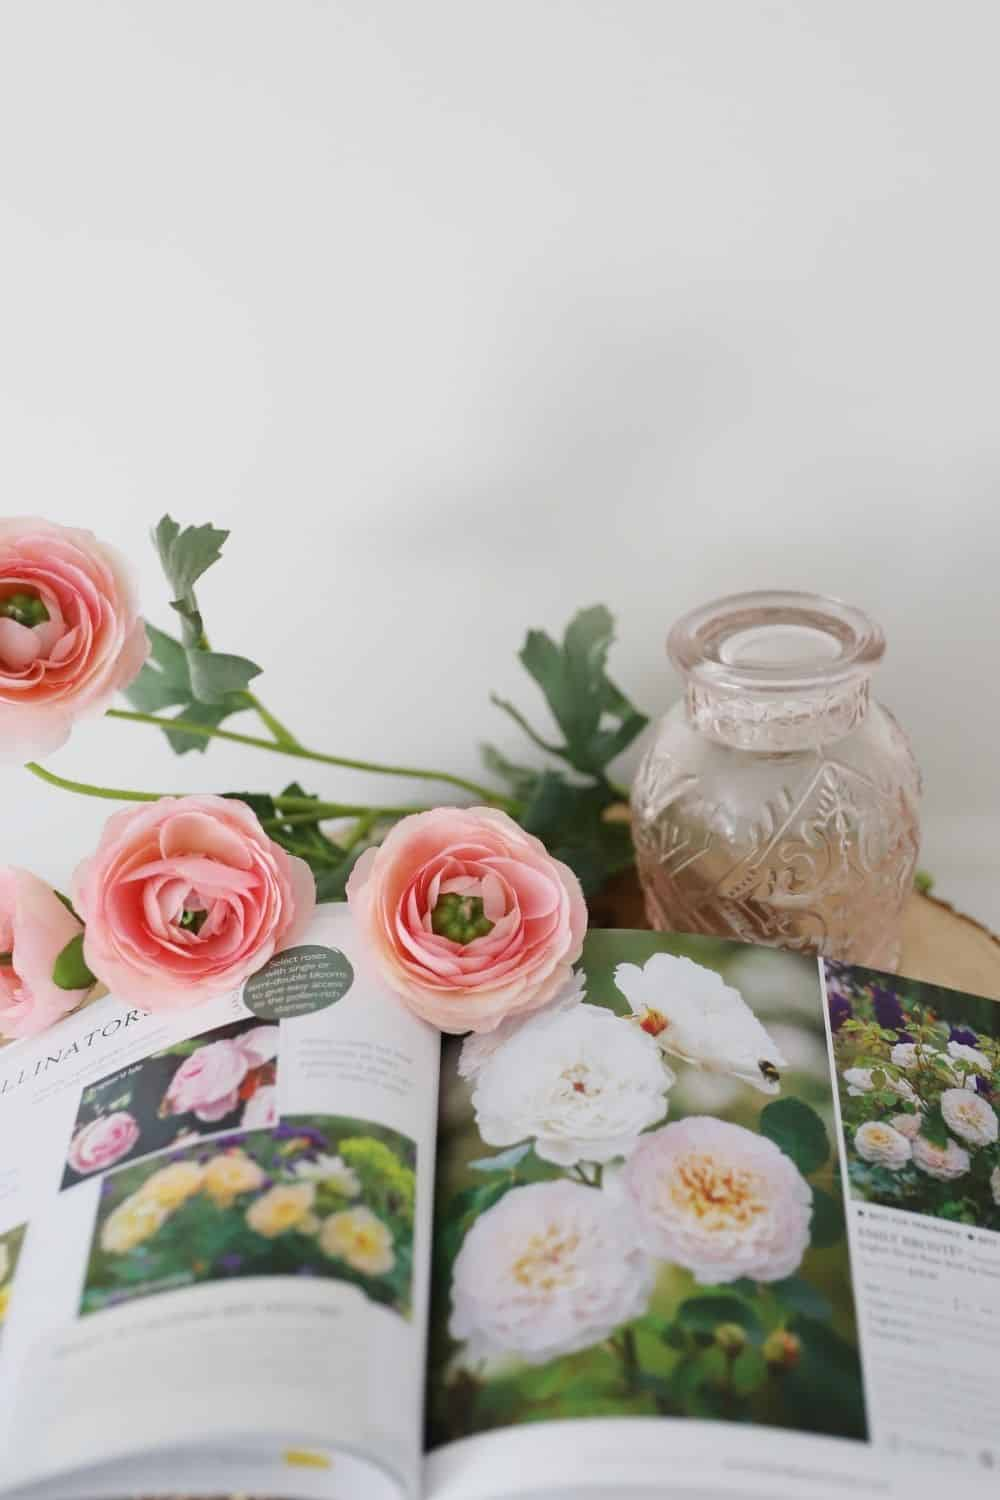 david austin rose guide for buying bare root roses